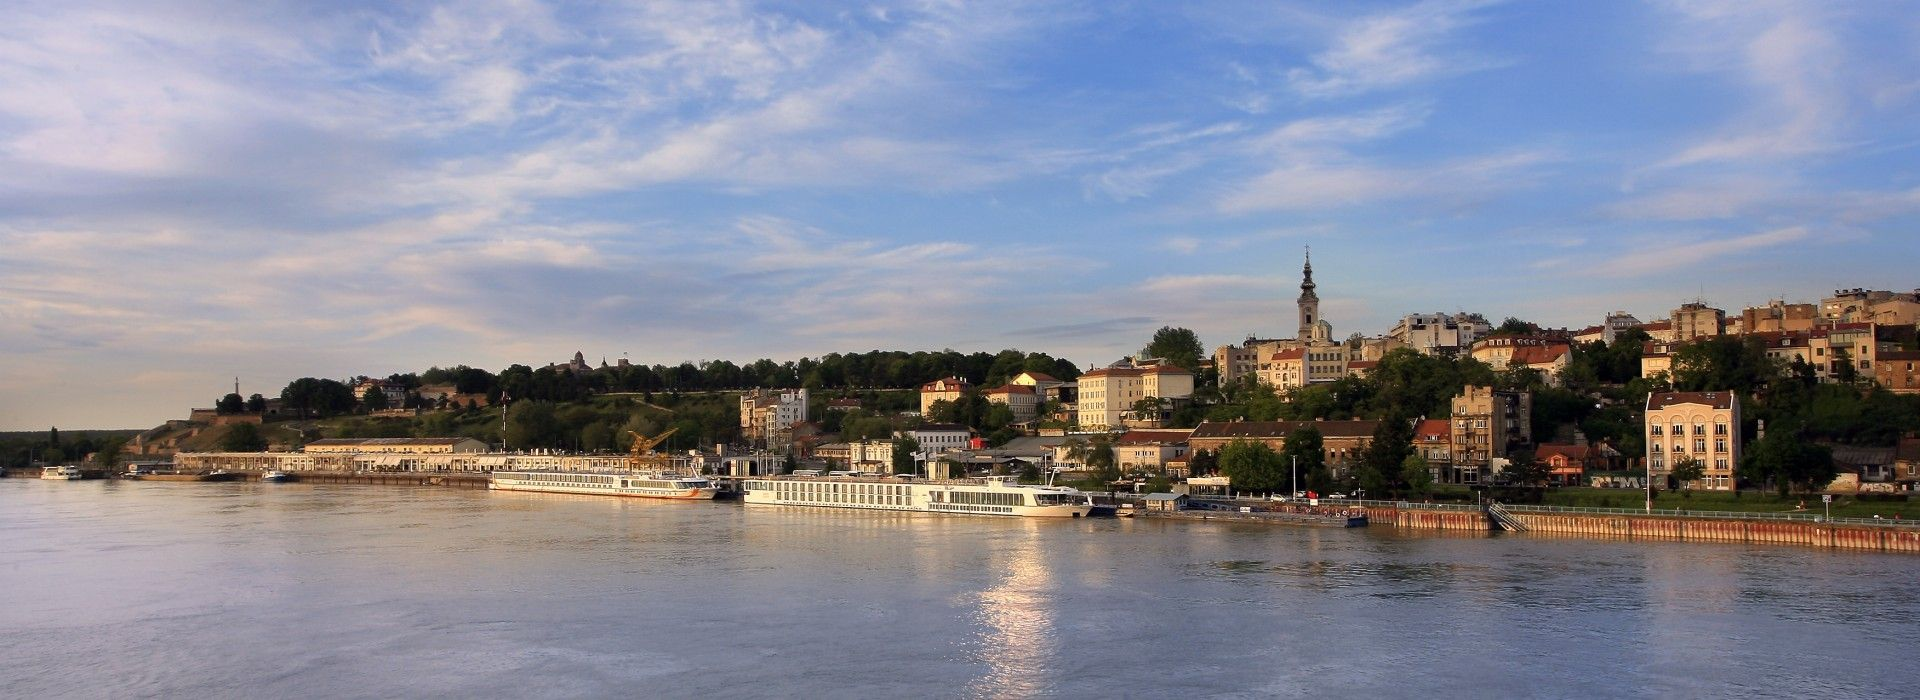 Sightseeing, attractions, culture and history Tours in Belgrade